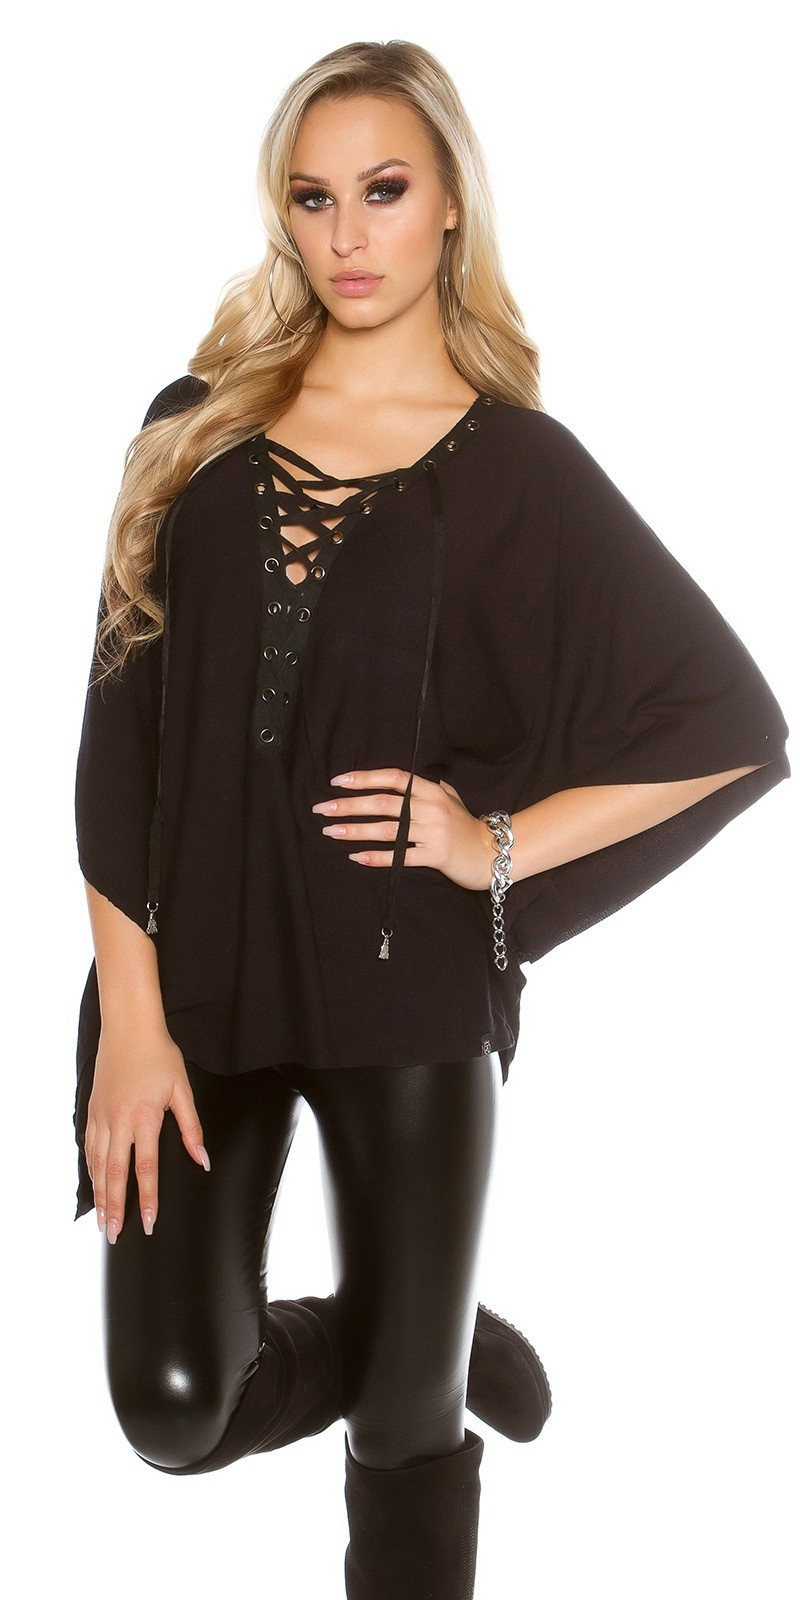 Trendy KouCla bat - poncho look jumper Black